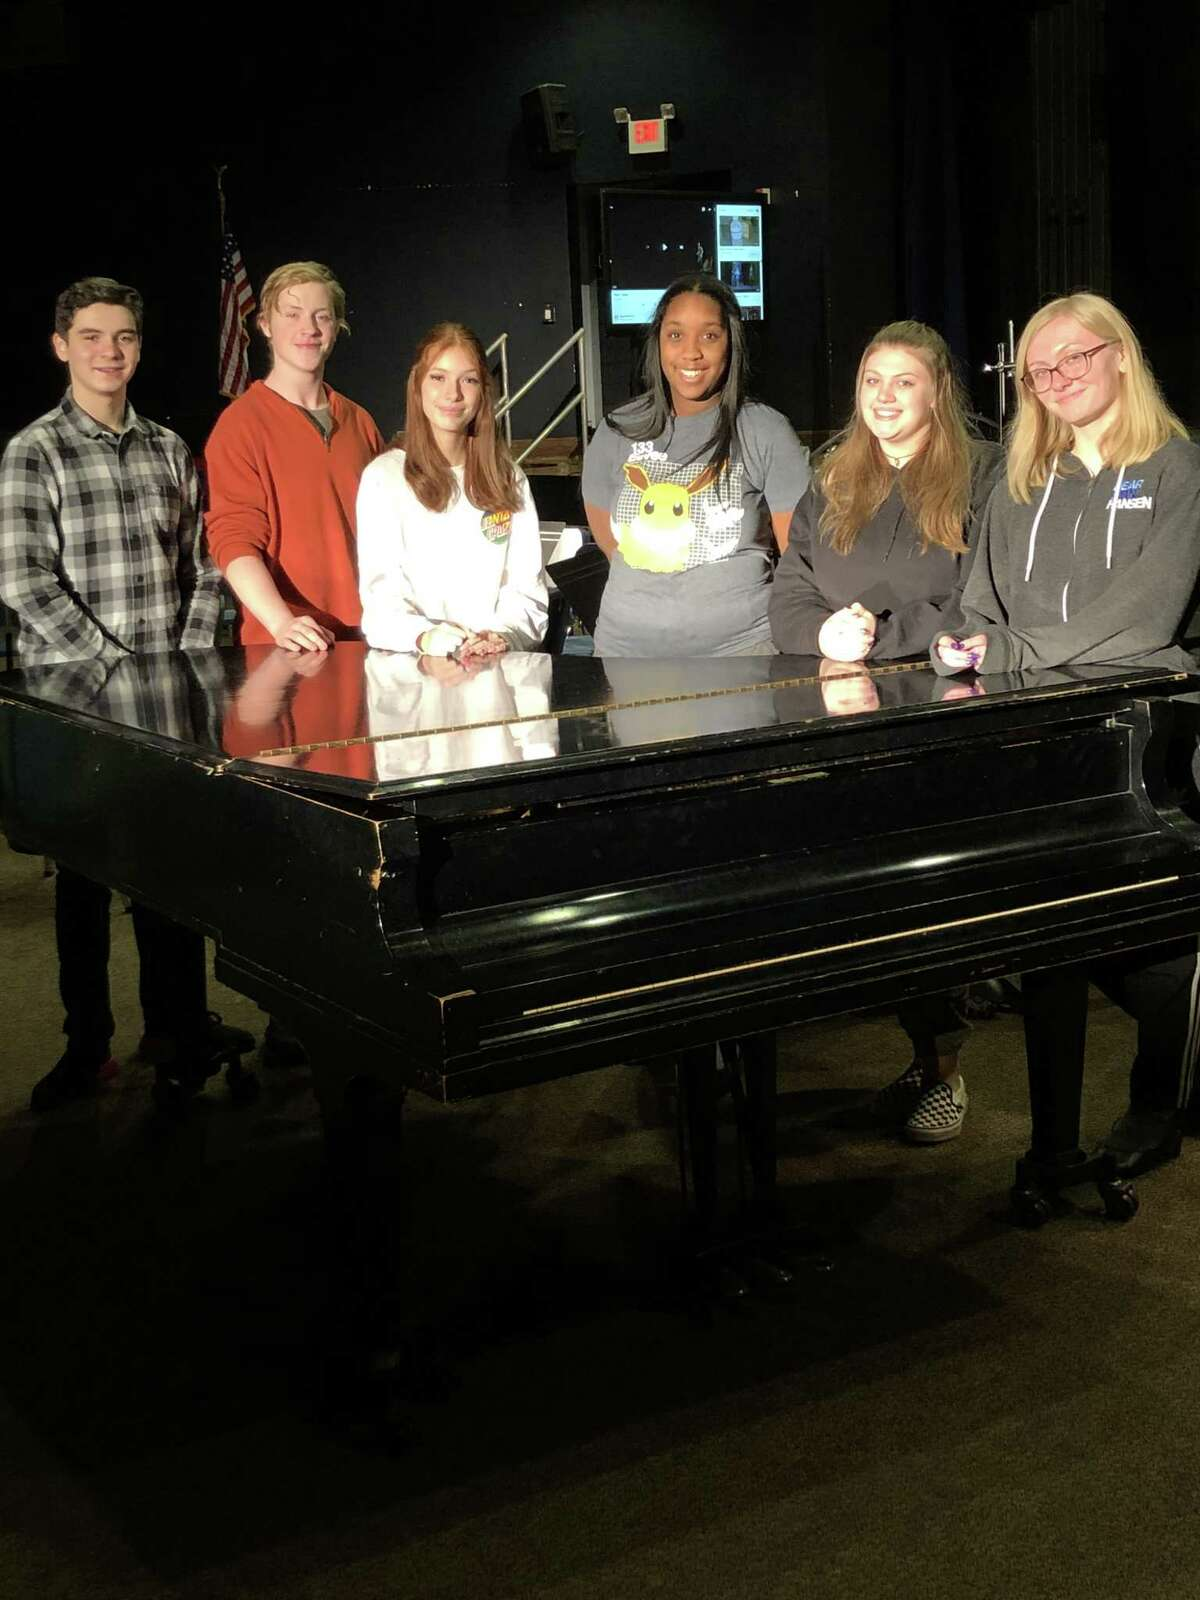 """Catskill, NY a€?"""" January 27, 2020 a€?"""" Six students from Catskill High School have been selected for the 2020 High School Honors Performance Series at Carnegie Hall. Elisha Clause, Matthew Caro, and Grace McCulloch will perform with the Mixed Choir, while Deandra Catterson, Isabella Truncale, and Ava Higgins will perform with the Women's Choir this February. Participation in these Honors Ensembles is limited to the highest-rated high school performers from across the world. (Photo provided)"""